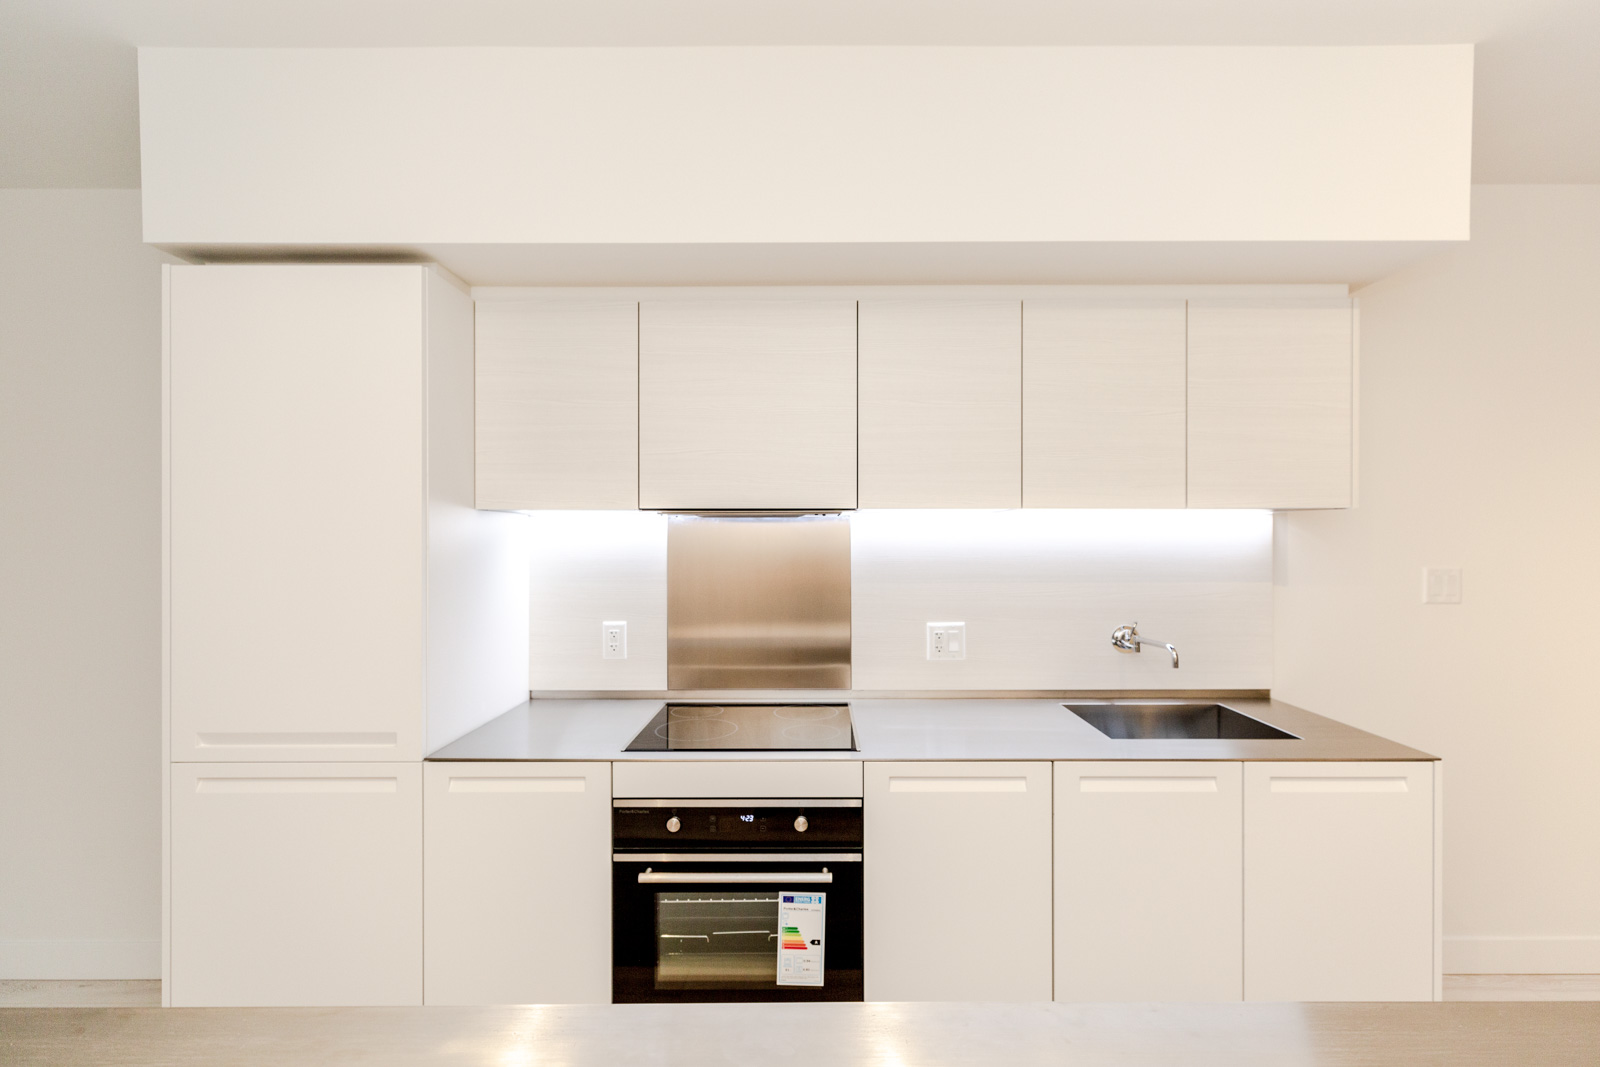 Kitchen with stainless steel appliances in Downtown Vancouver rental condo.